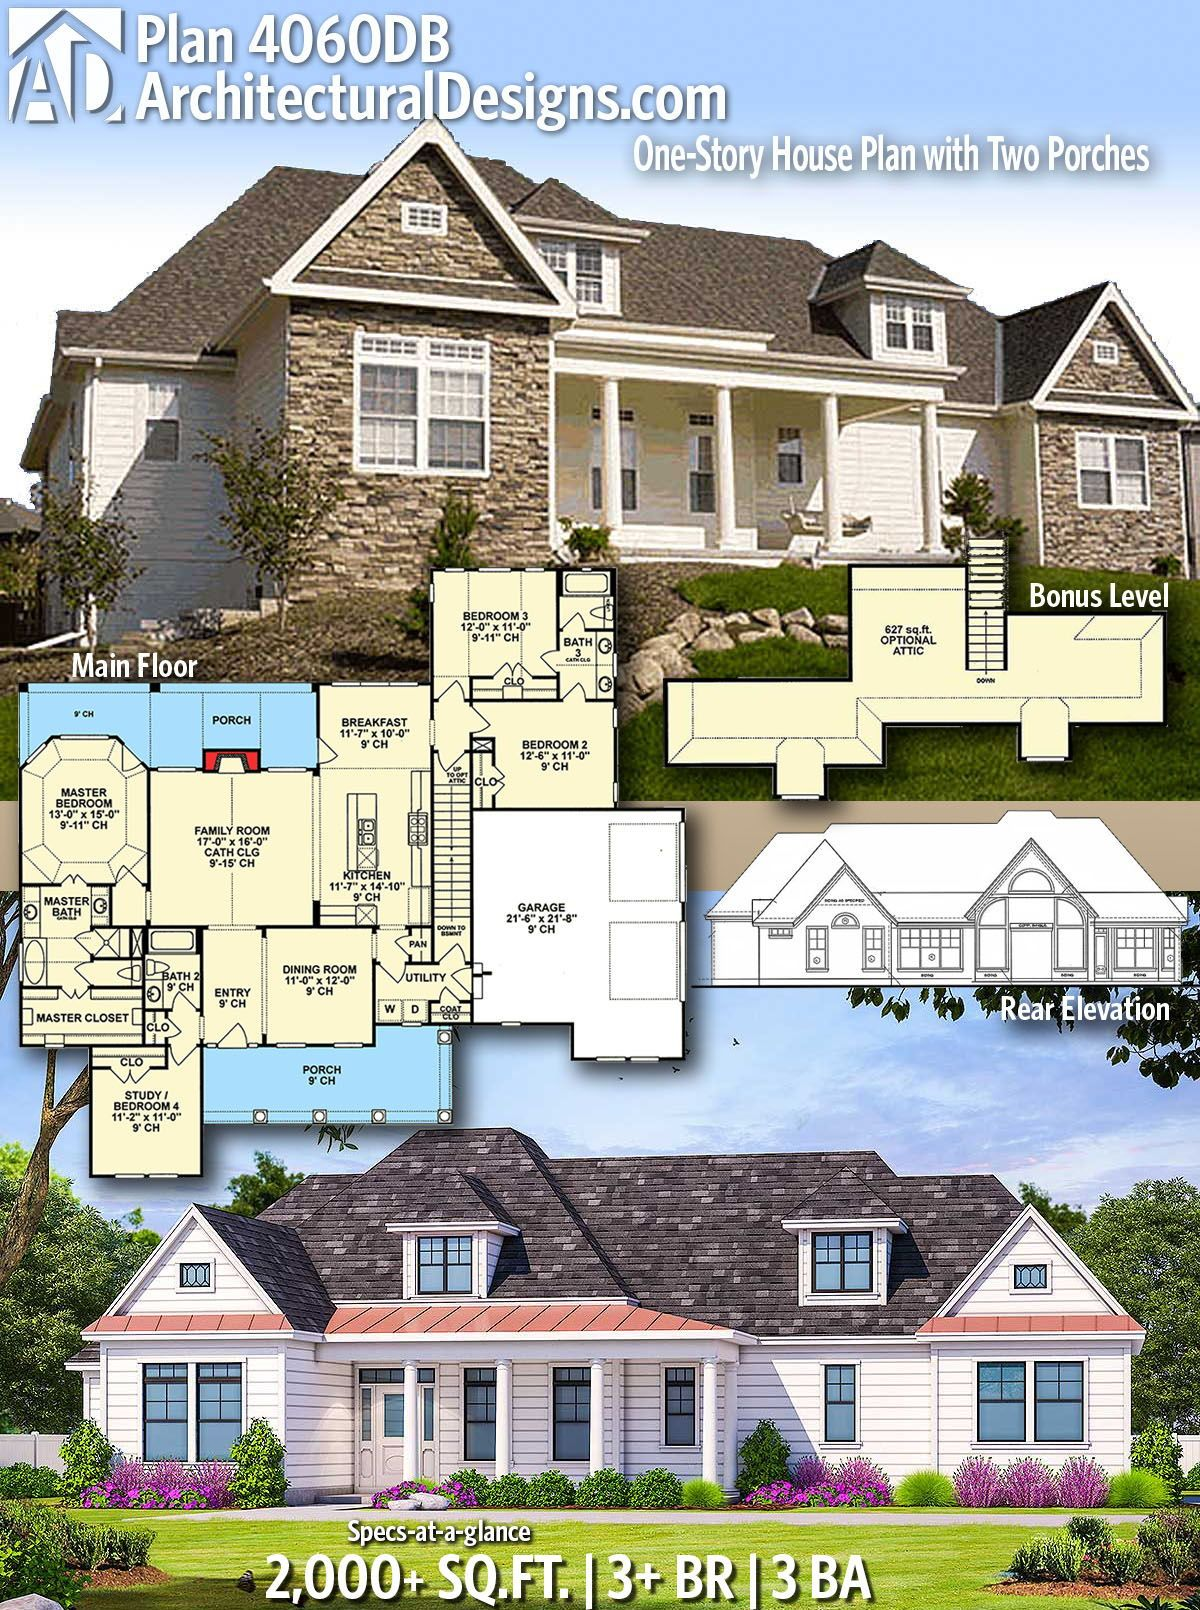 Architectural designs home plan db gives you bedrooms baths and sq ft ready when are where do want to build also one story house with two porches dream homes rh pinterest